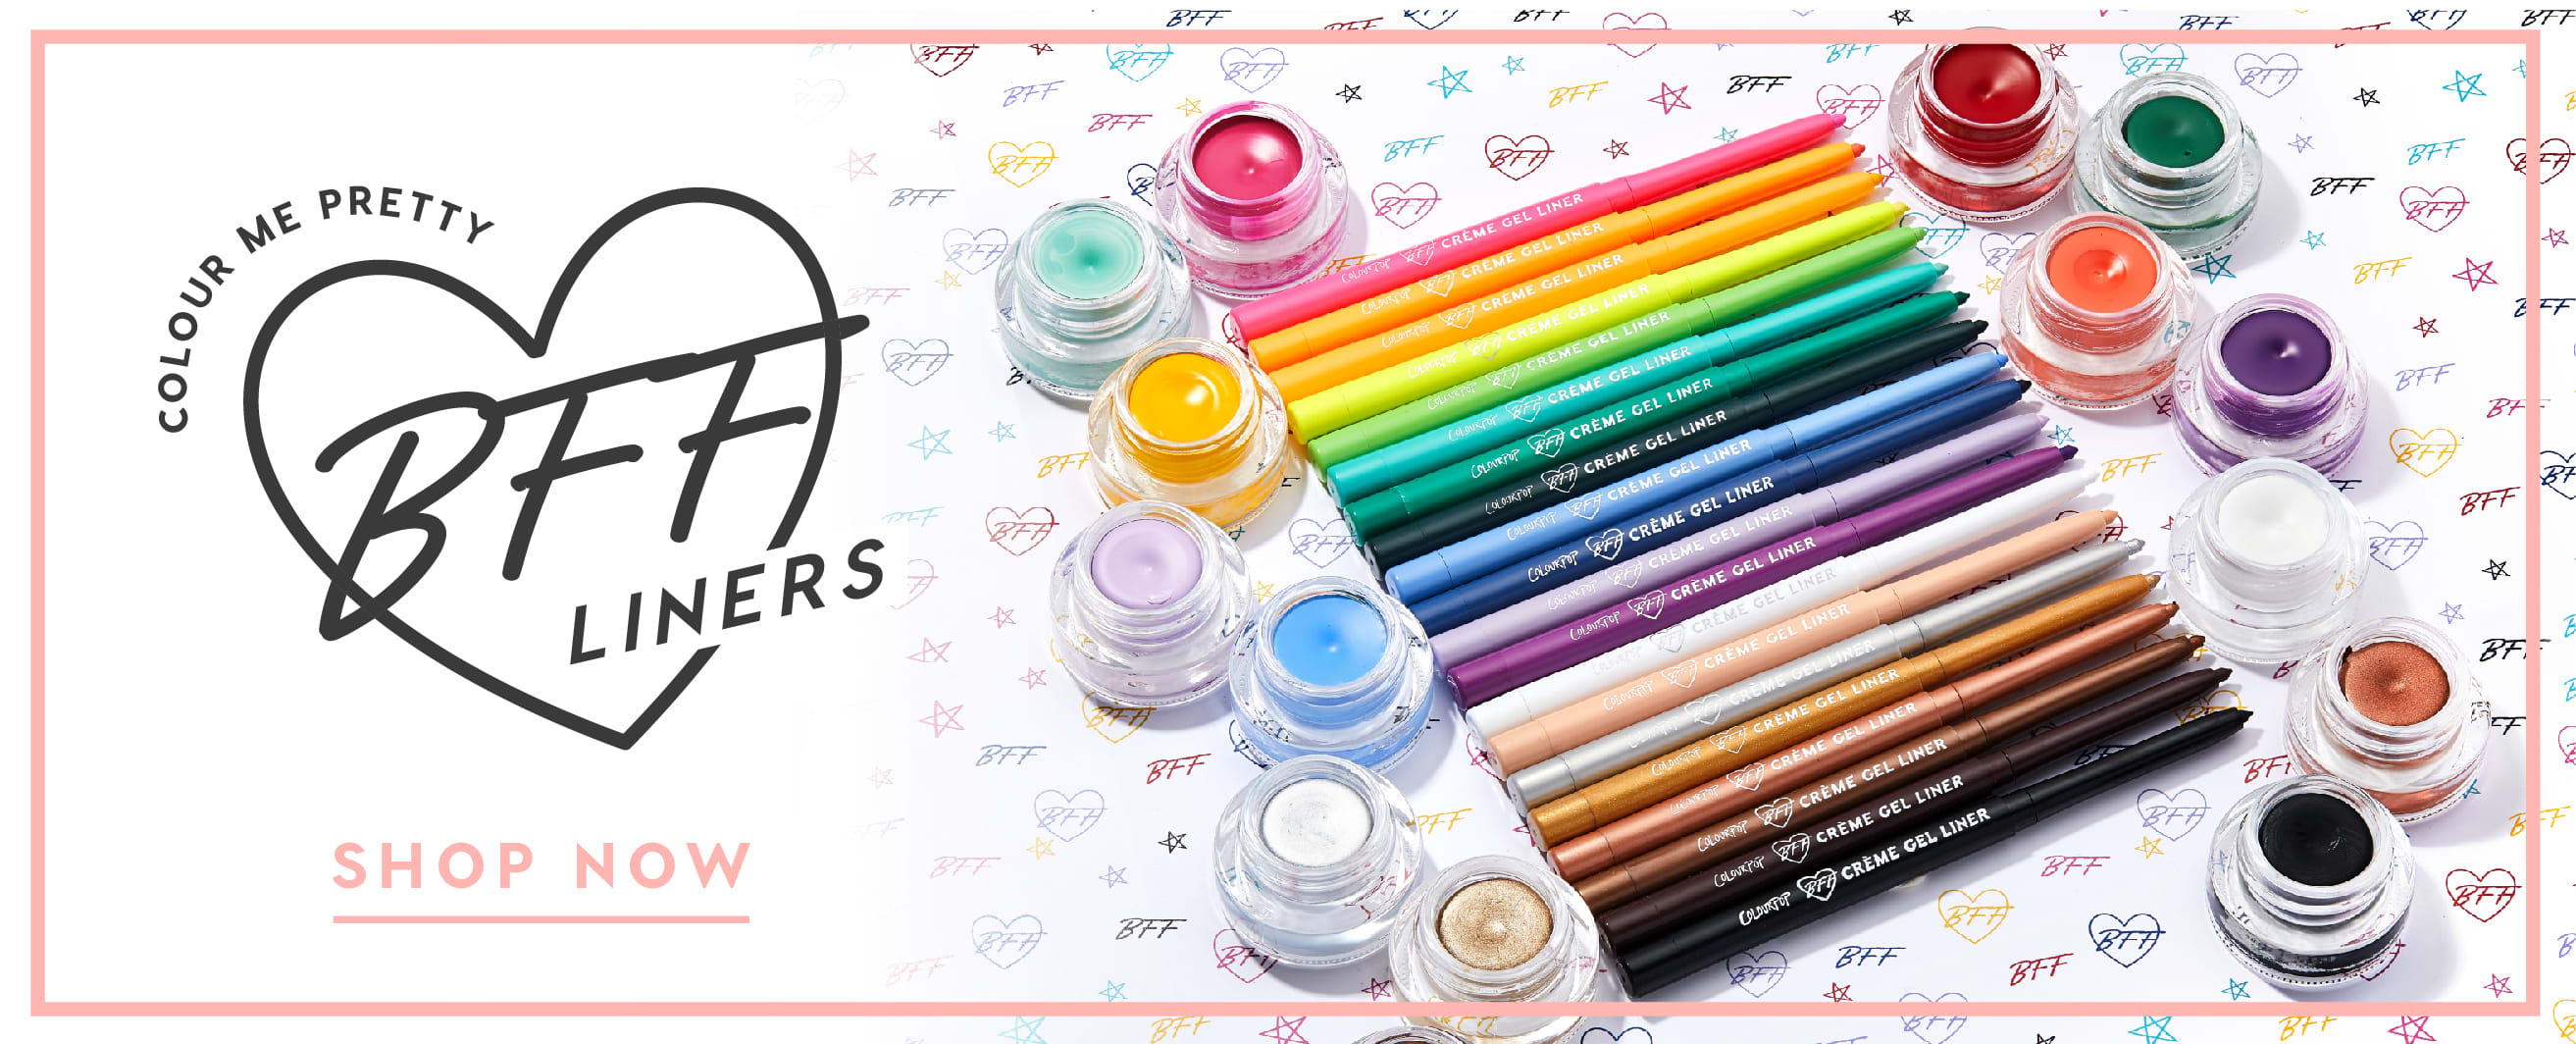 Colour me pretty with BFF eyeliners